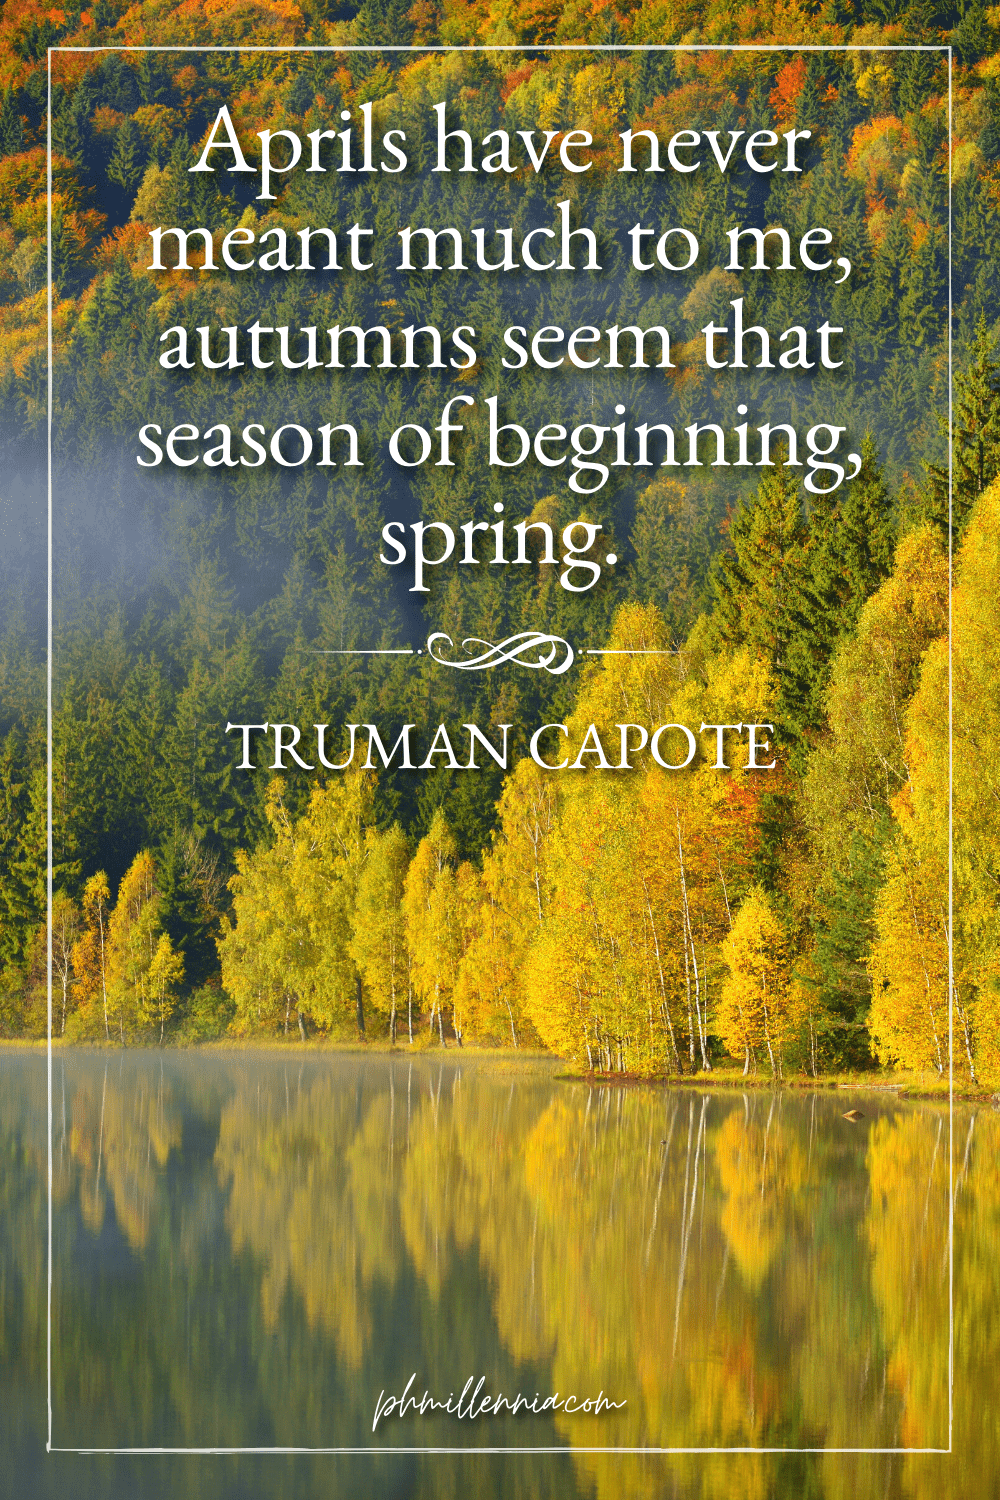 """A graphic featuring an autumn quote/fall saying over an image of trees with autumn/fall foliage reflected on a body of water, designed as a Pinterest Pin for the article """"199 Autumn Quotes to Fall Deeply and Spectacularly in Love With"""" on phmillennia.com"""